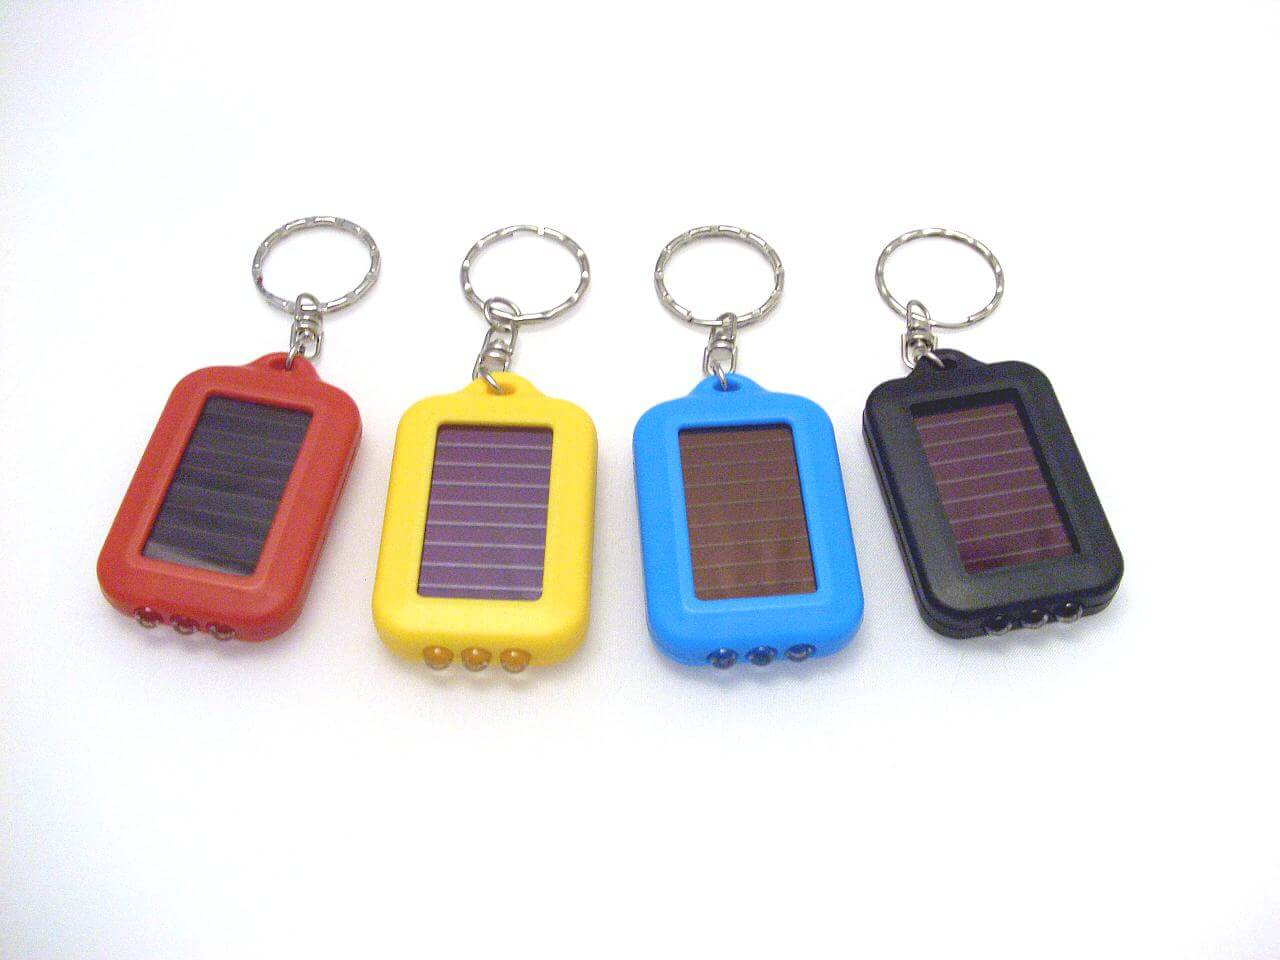 Solar-powered battery keychain